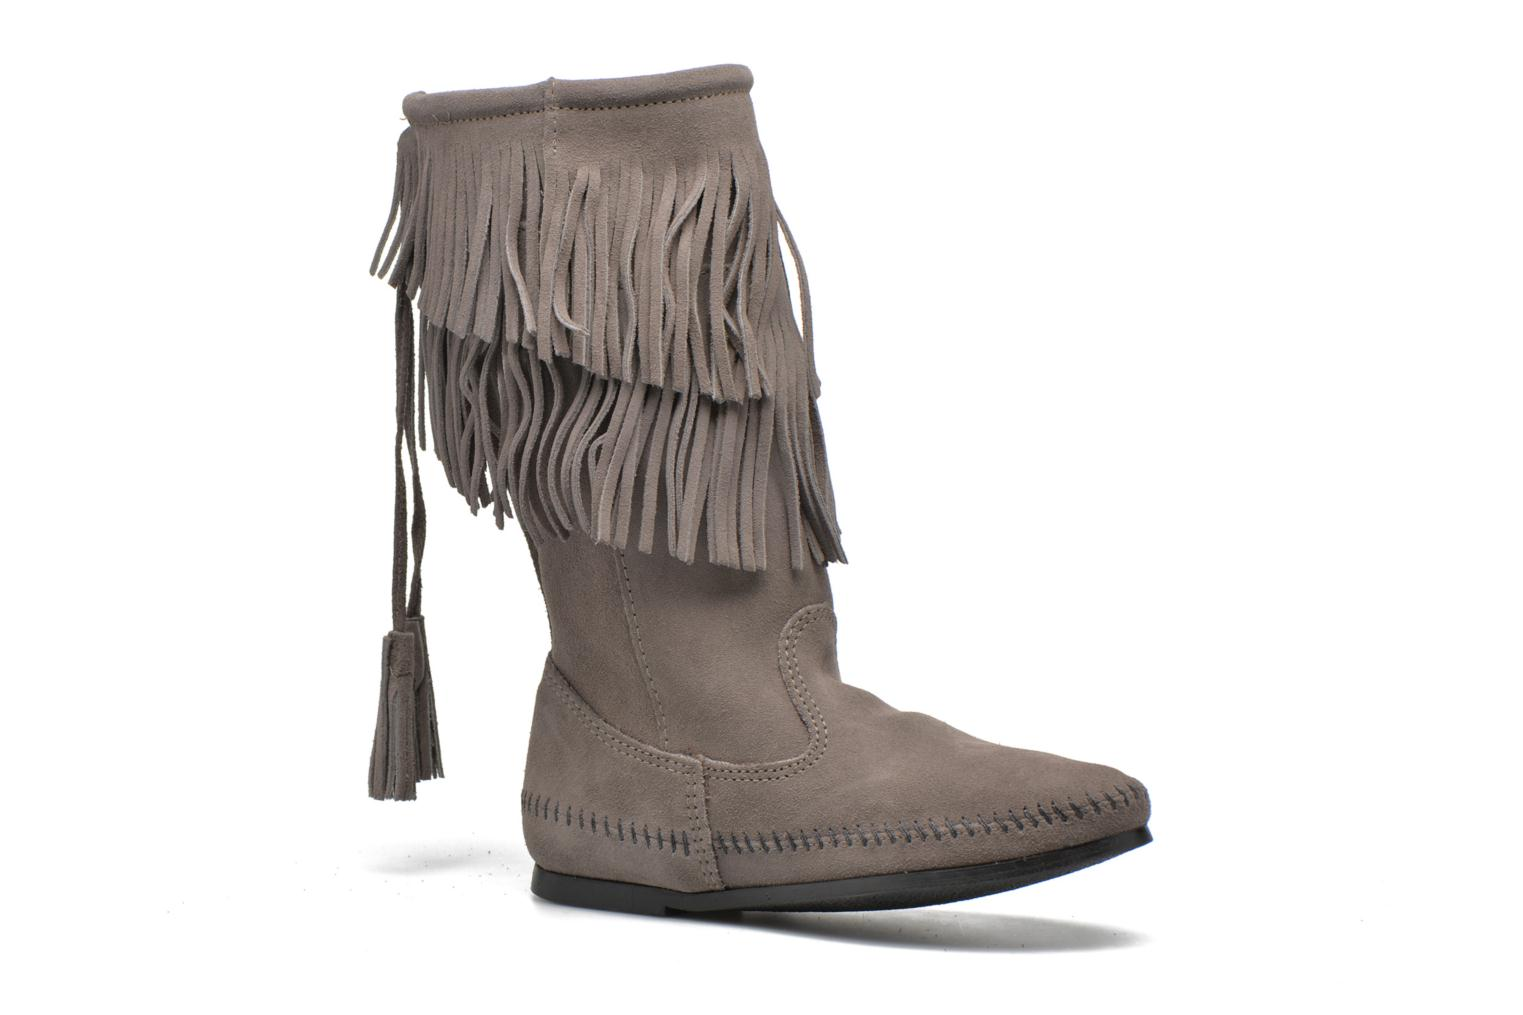 Bottines et boots Minnetonka CALF HI 2LAYER FRINGE Gris vue détail/paire